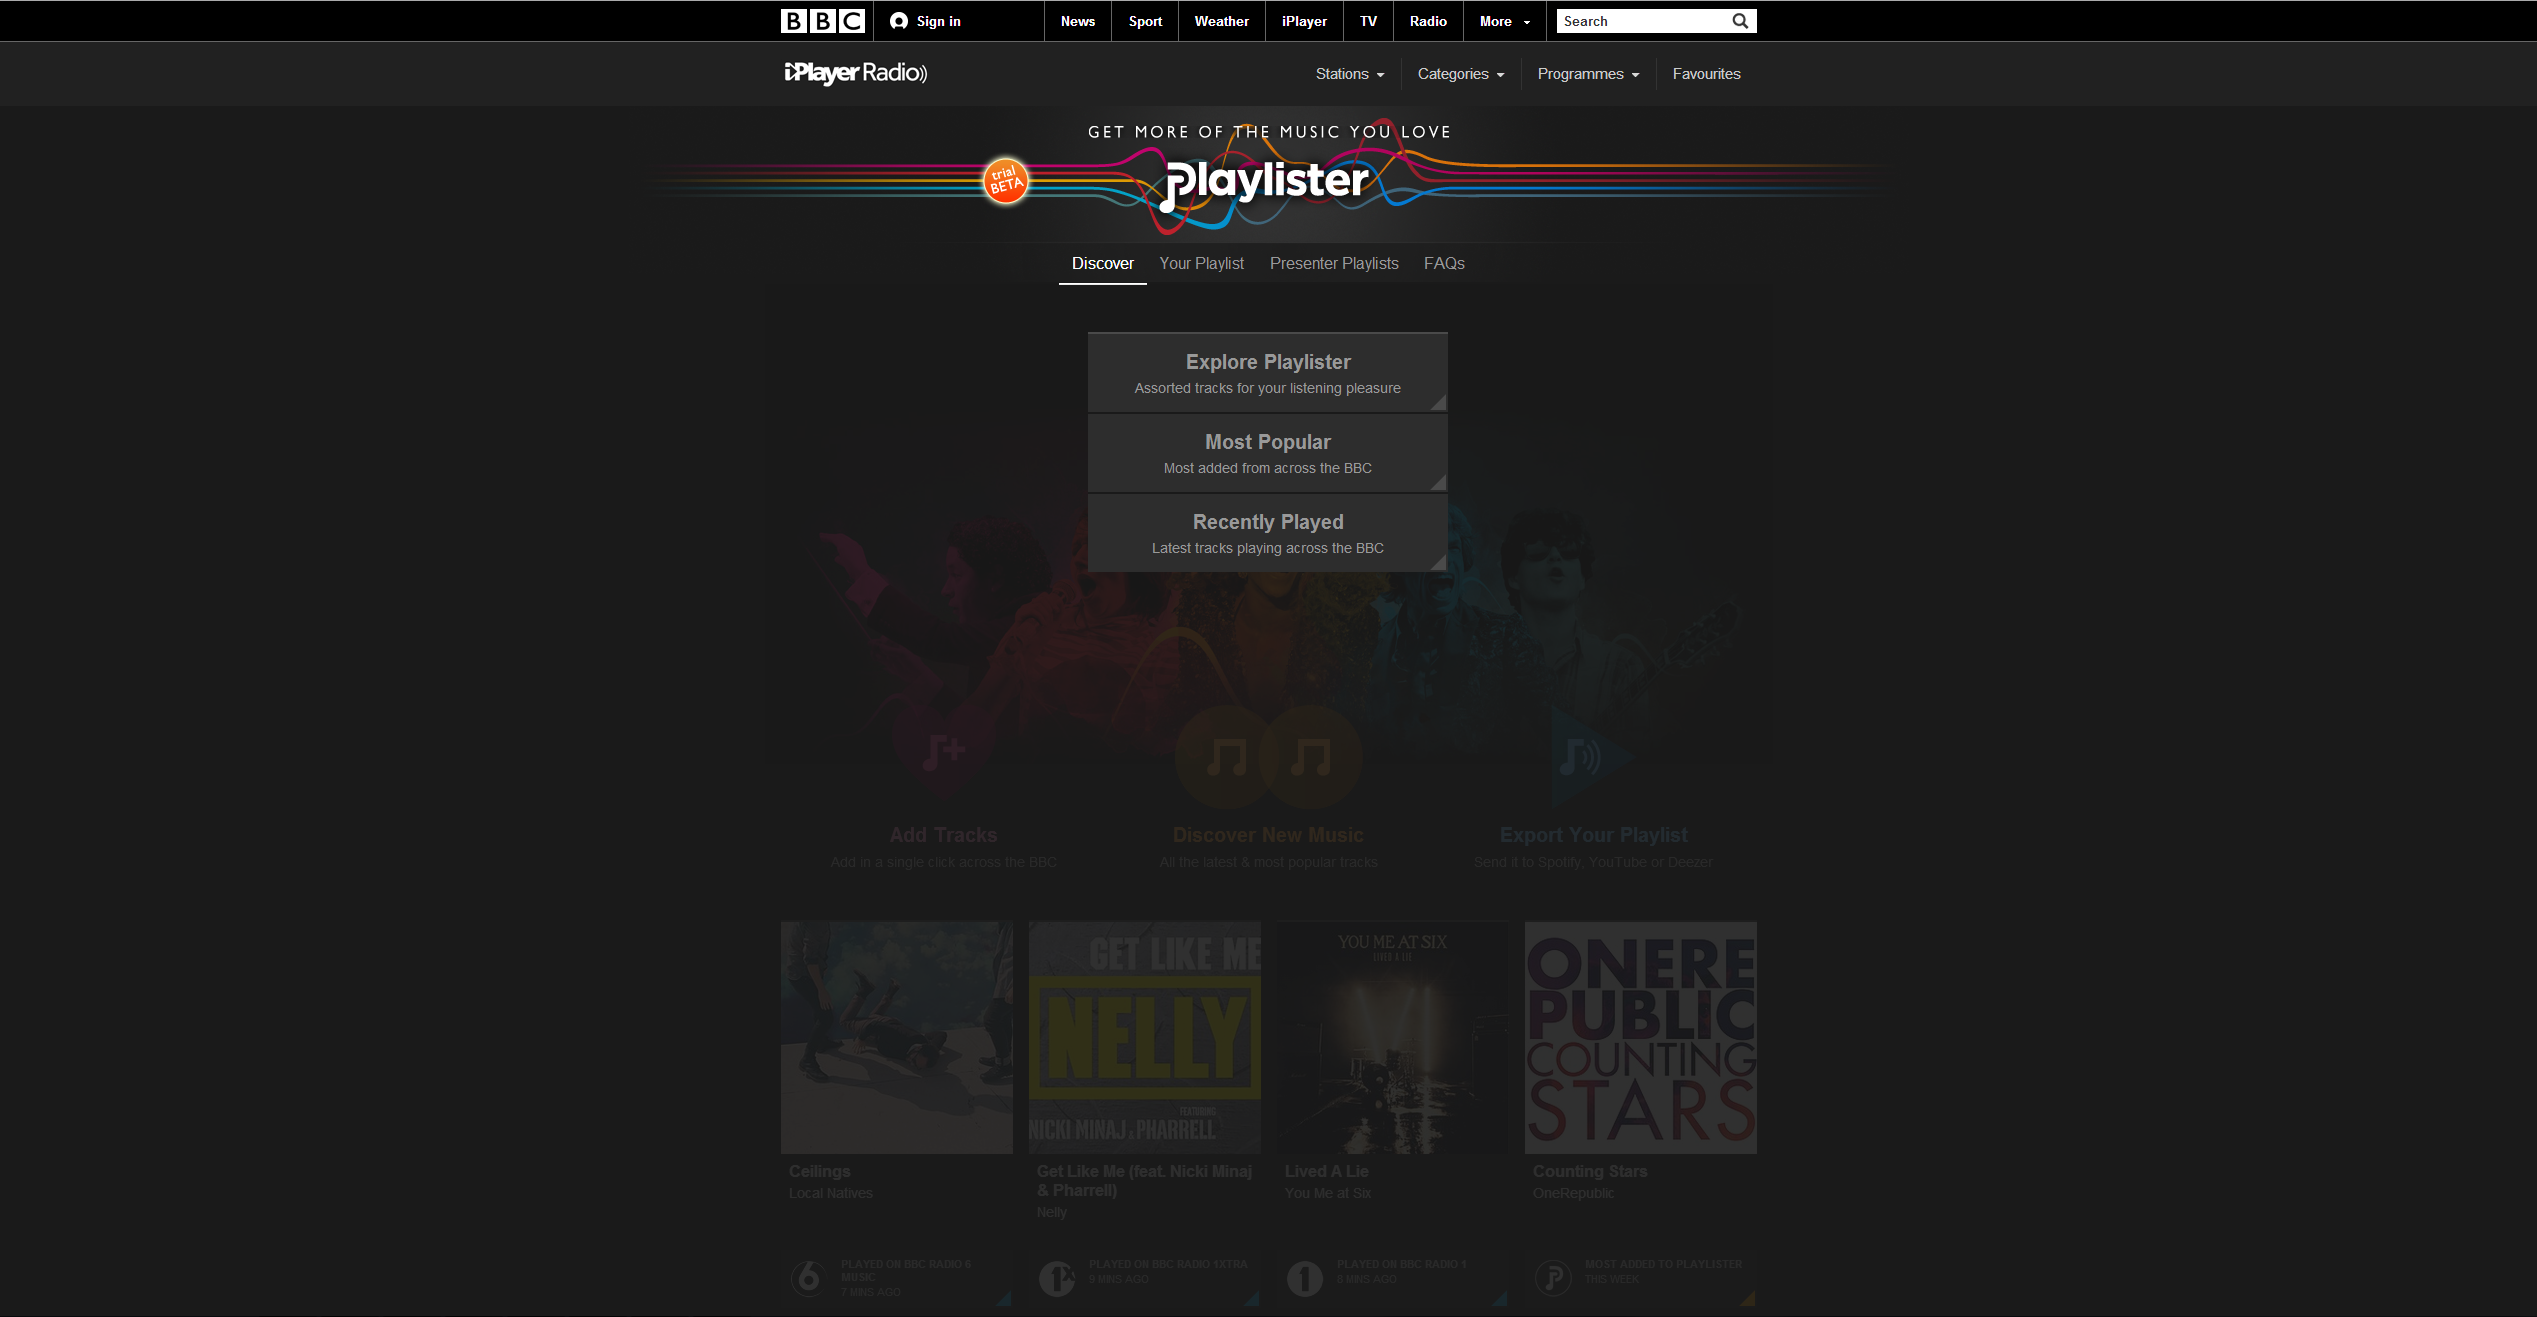 Playlister explore How to use the BBCs new Playlister music service